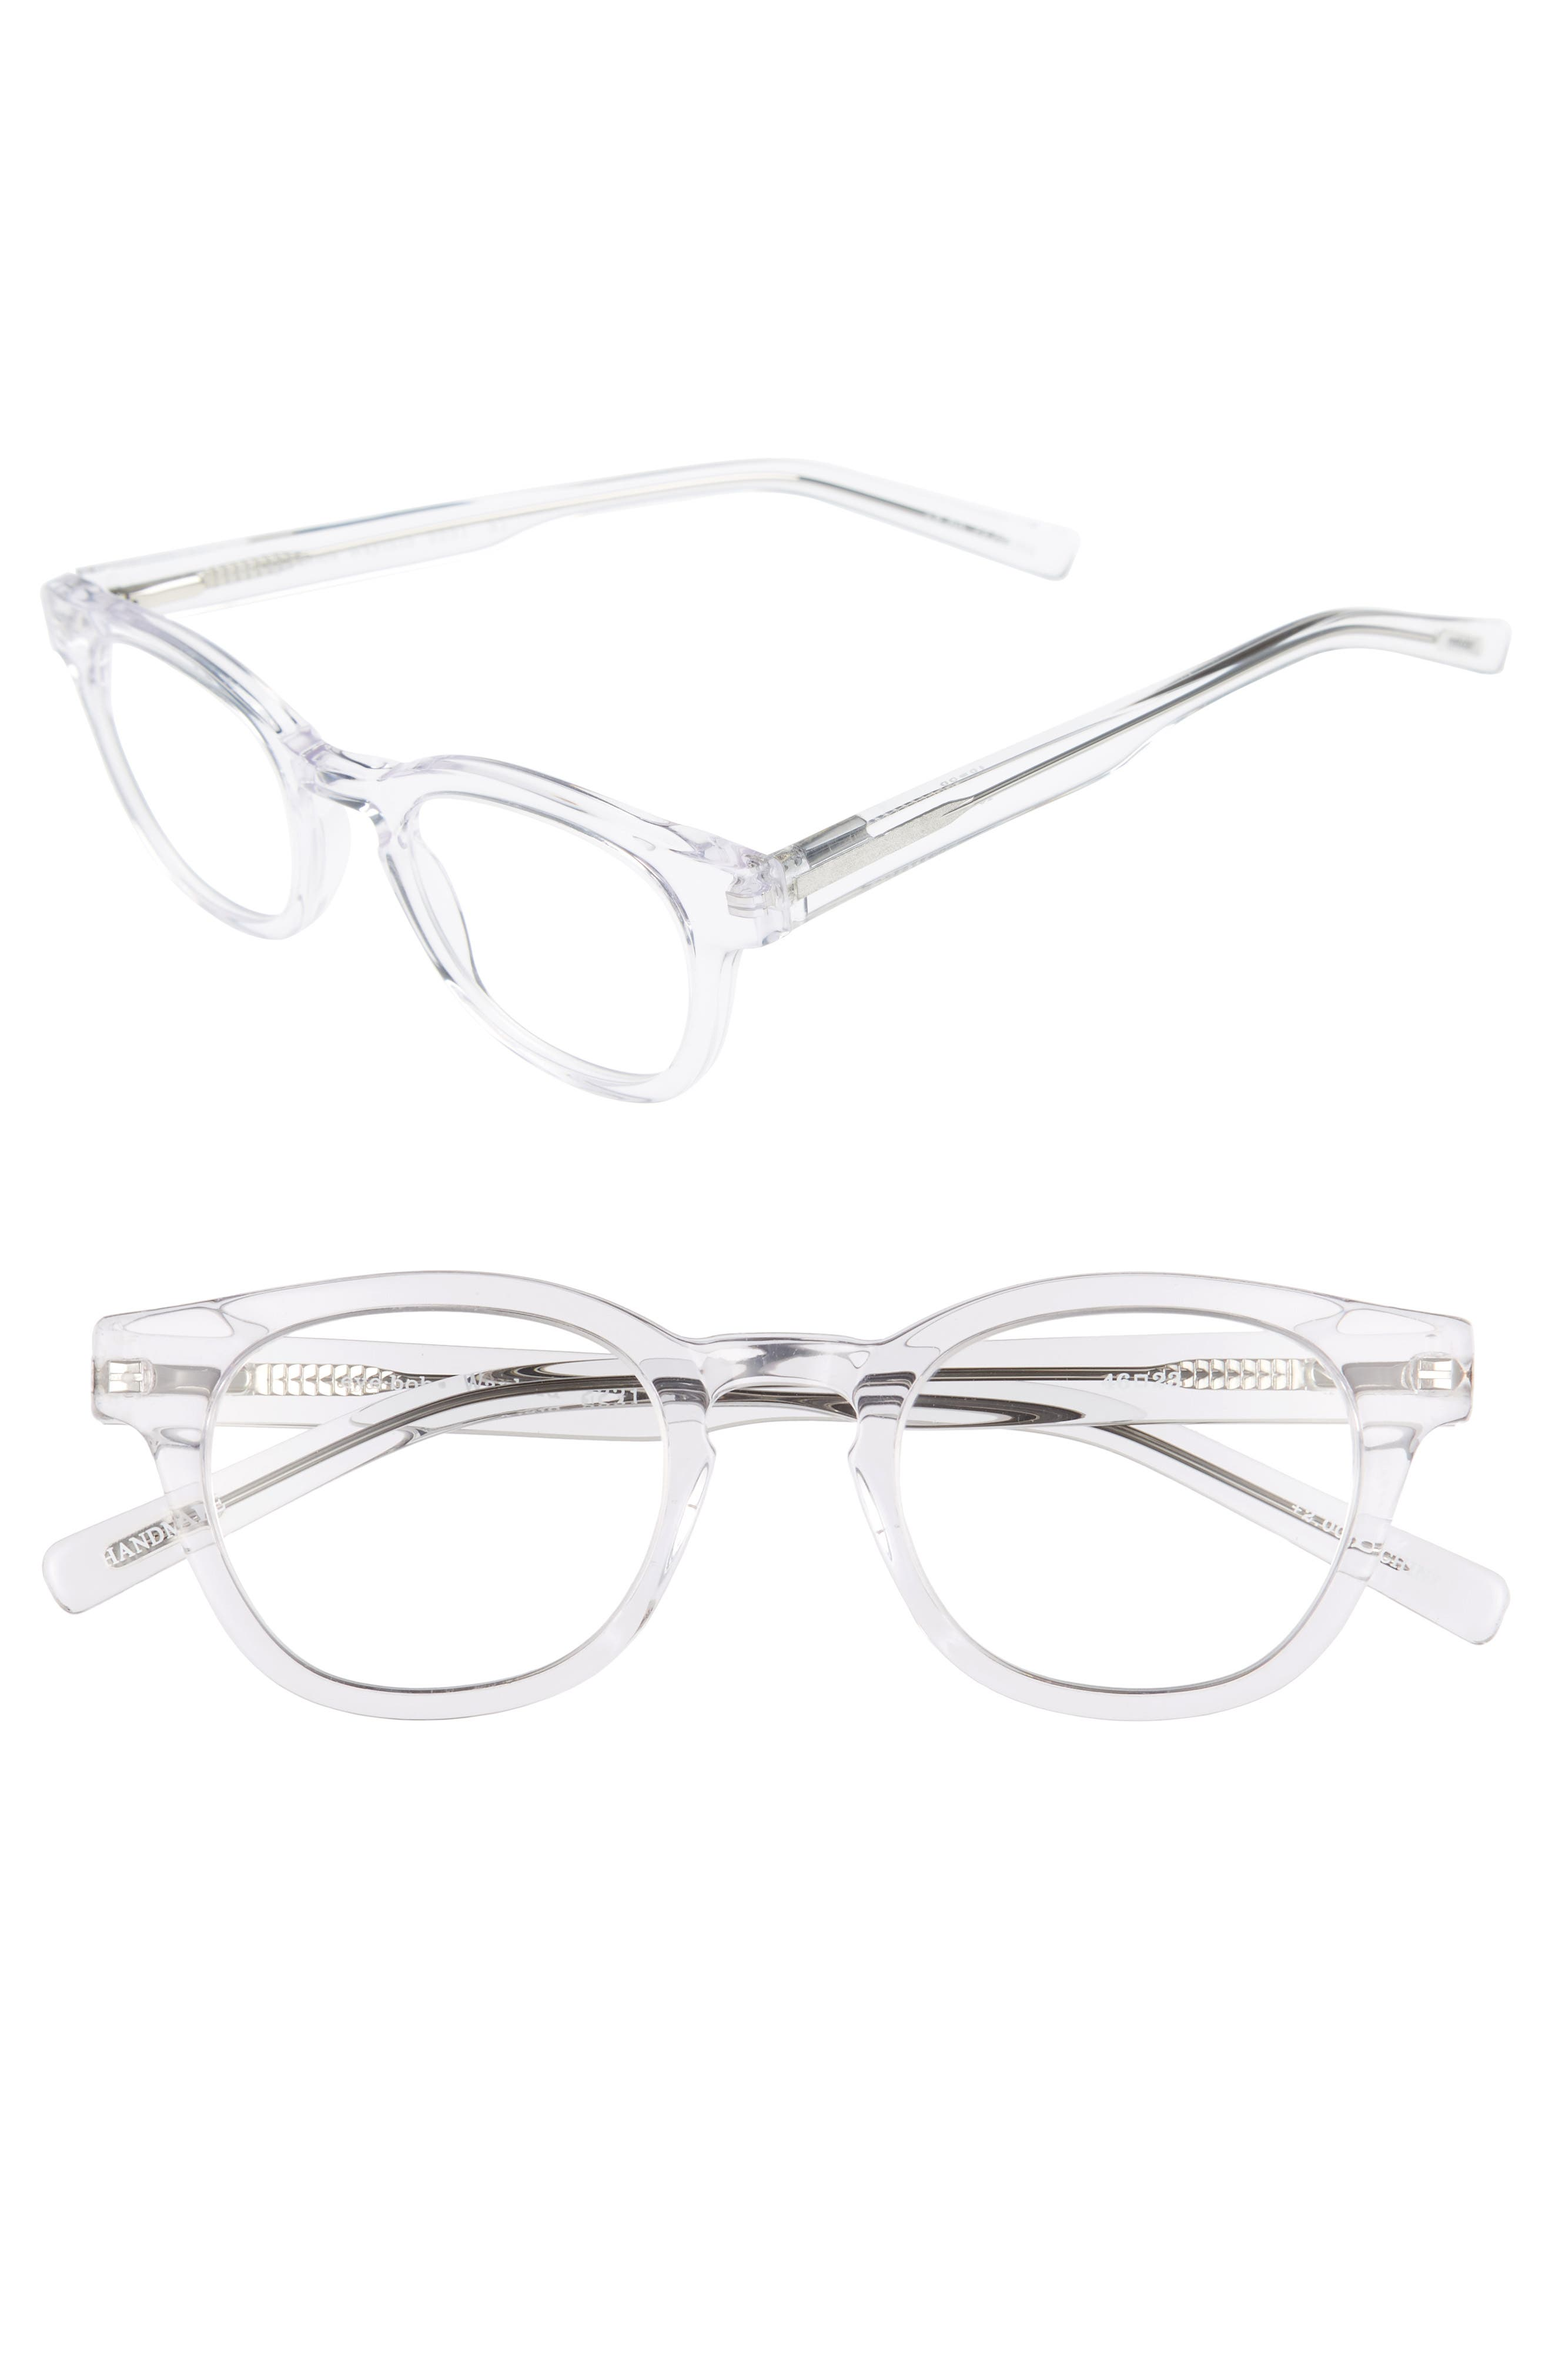 Waylaid 46mm Reading Glasses,                             Main thumbnail 1, color,                             CRYSTAL